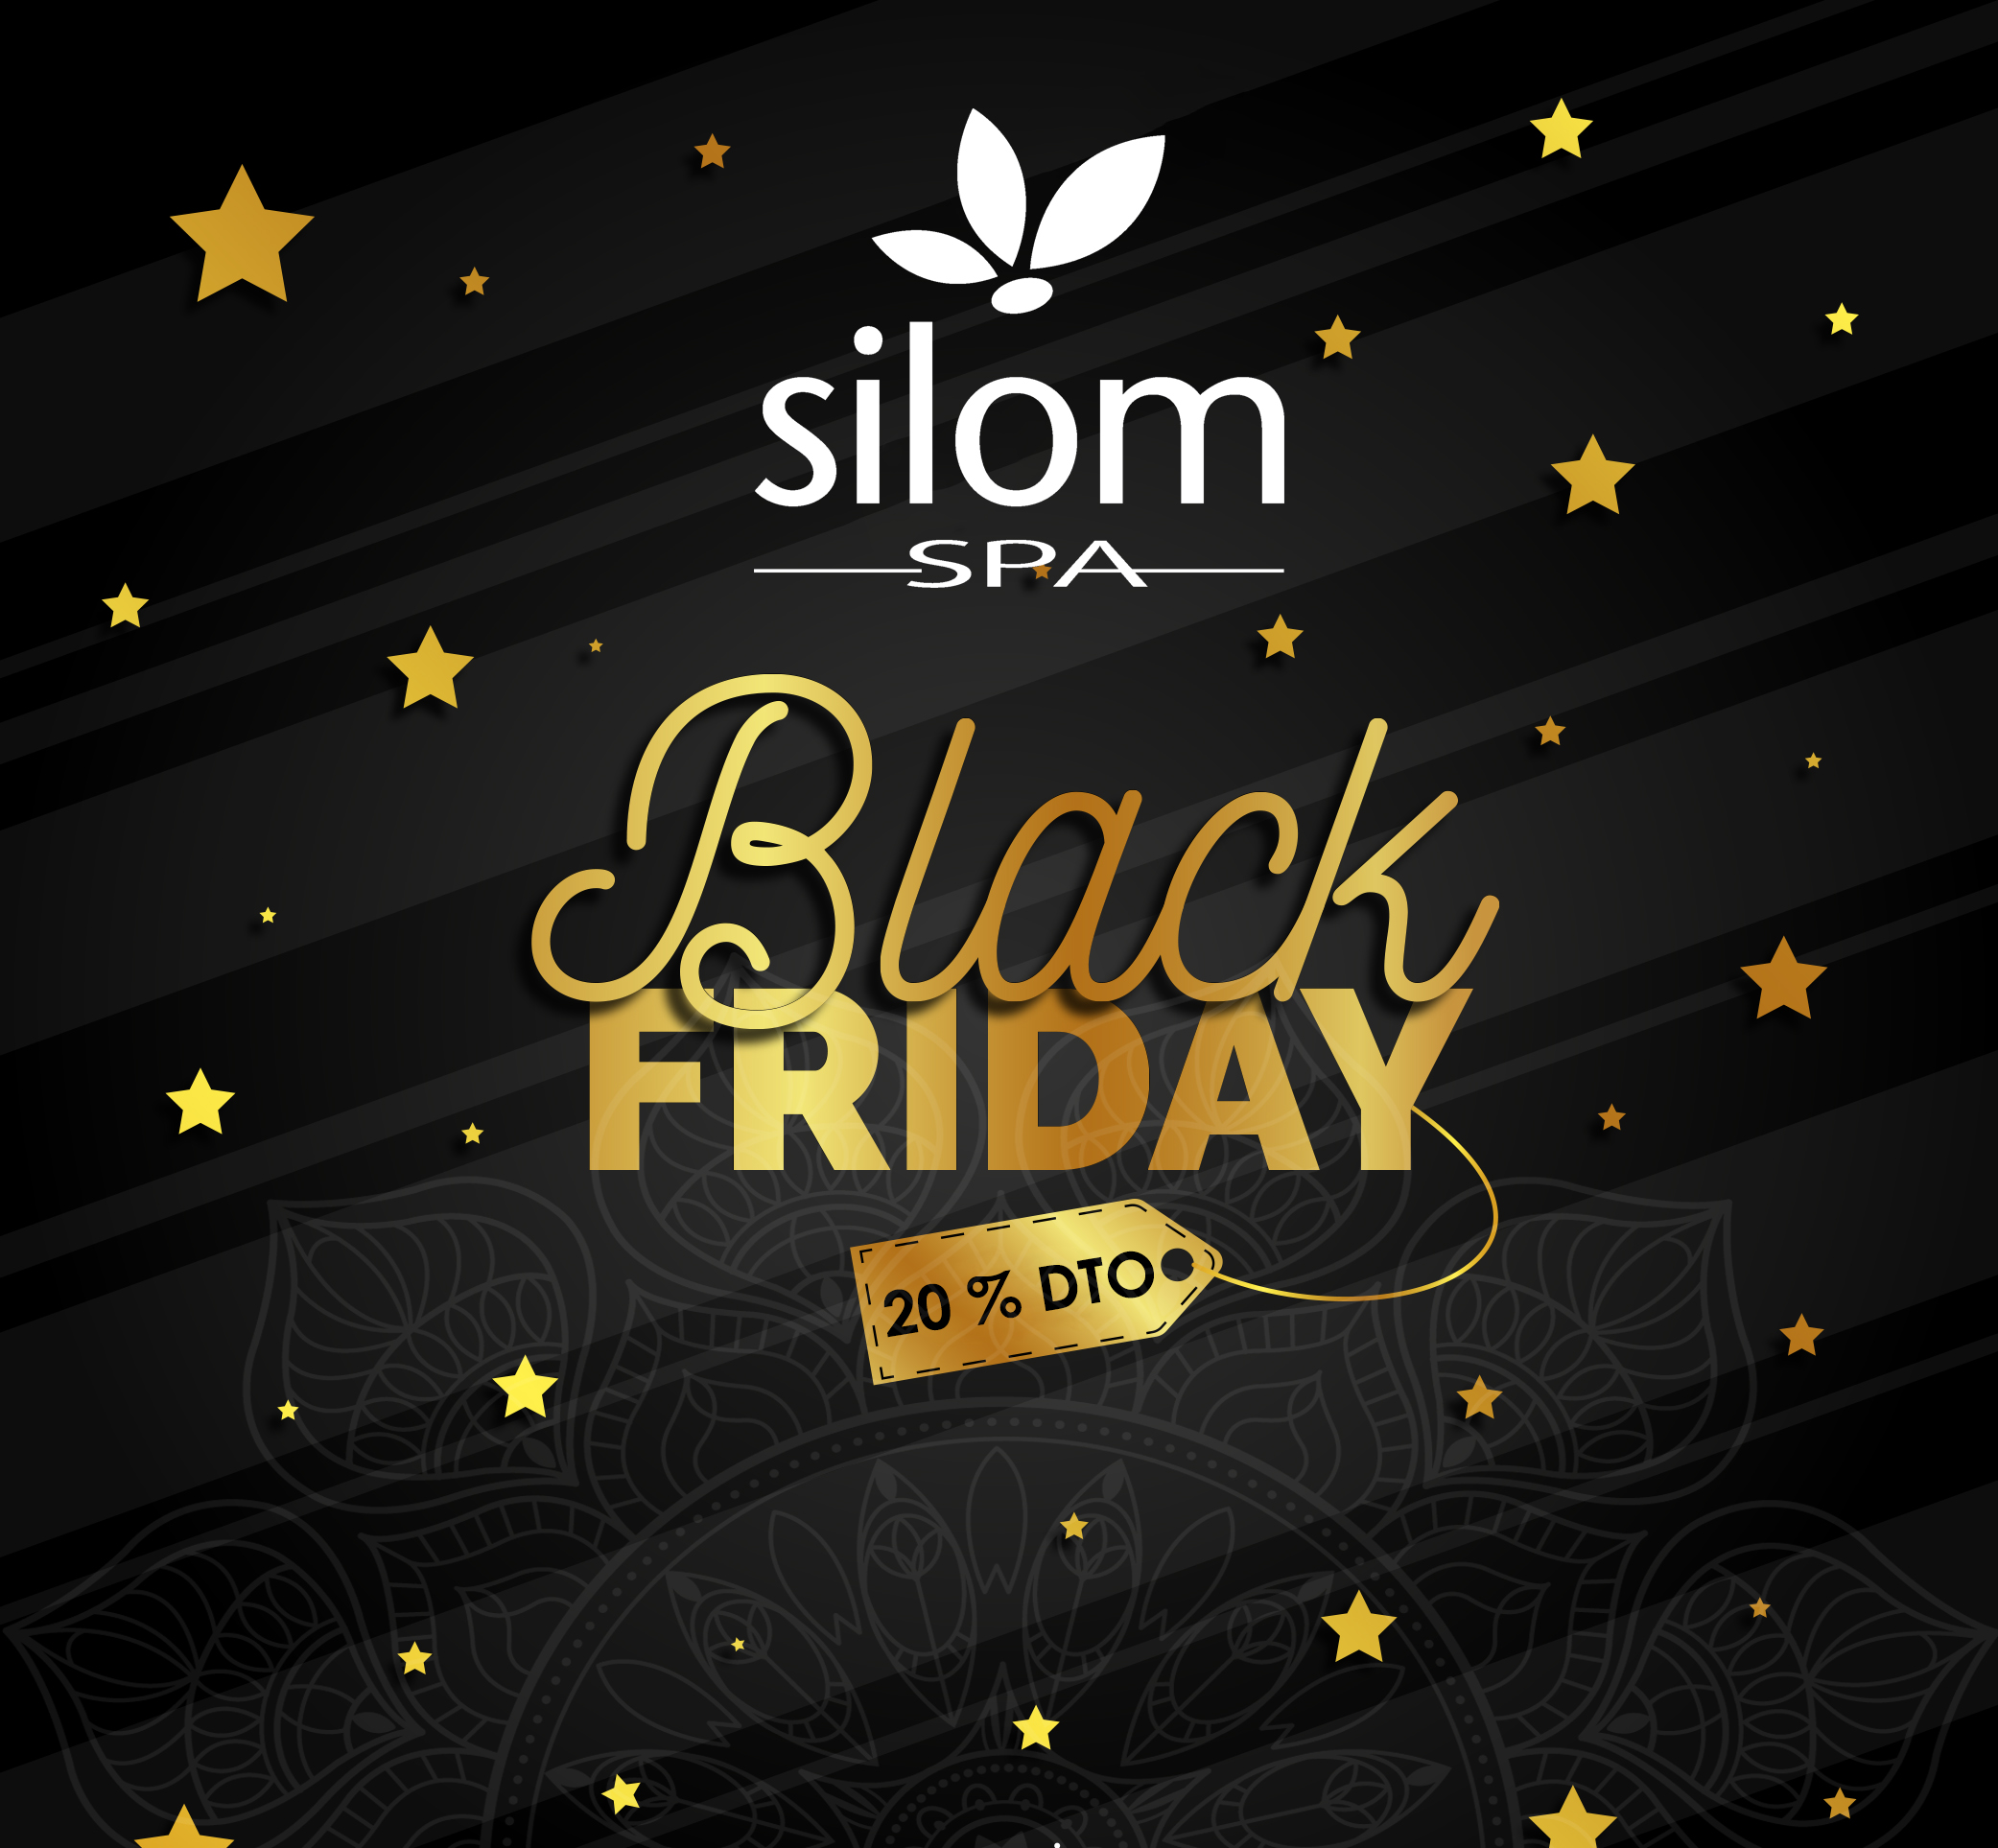 Black Friday en Silom Spa